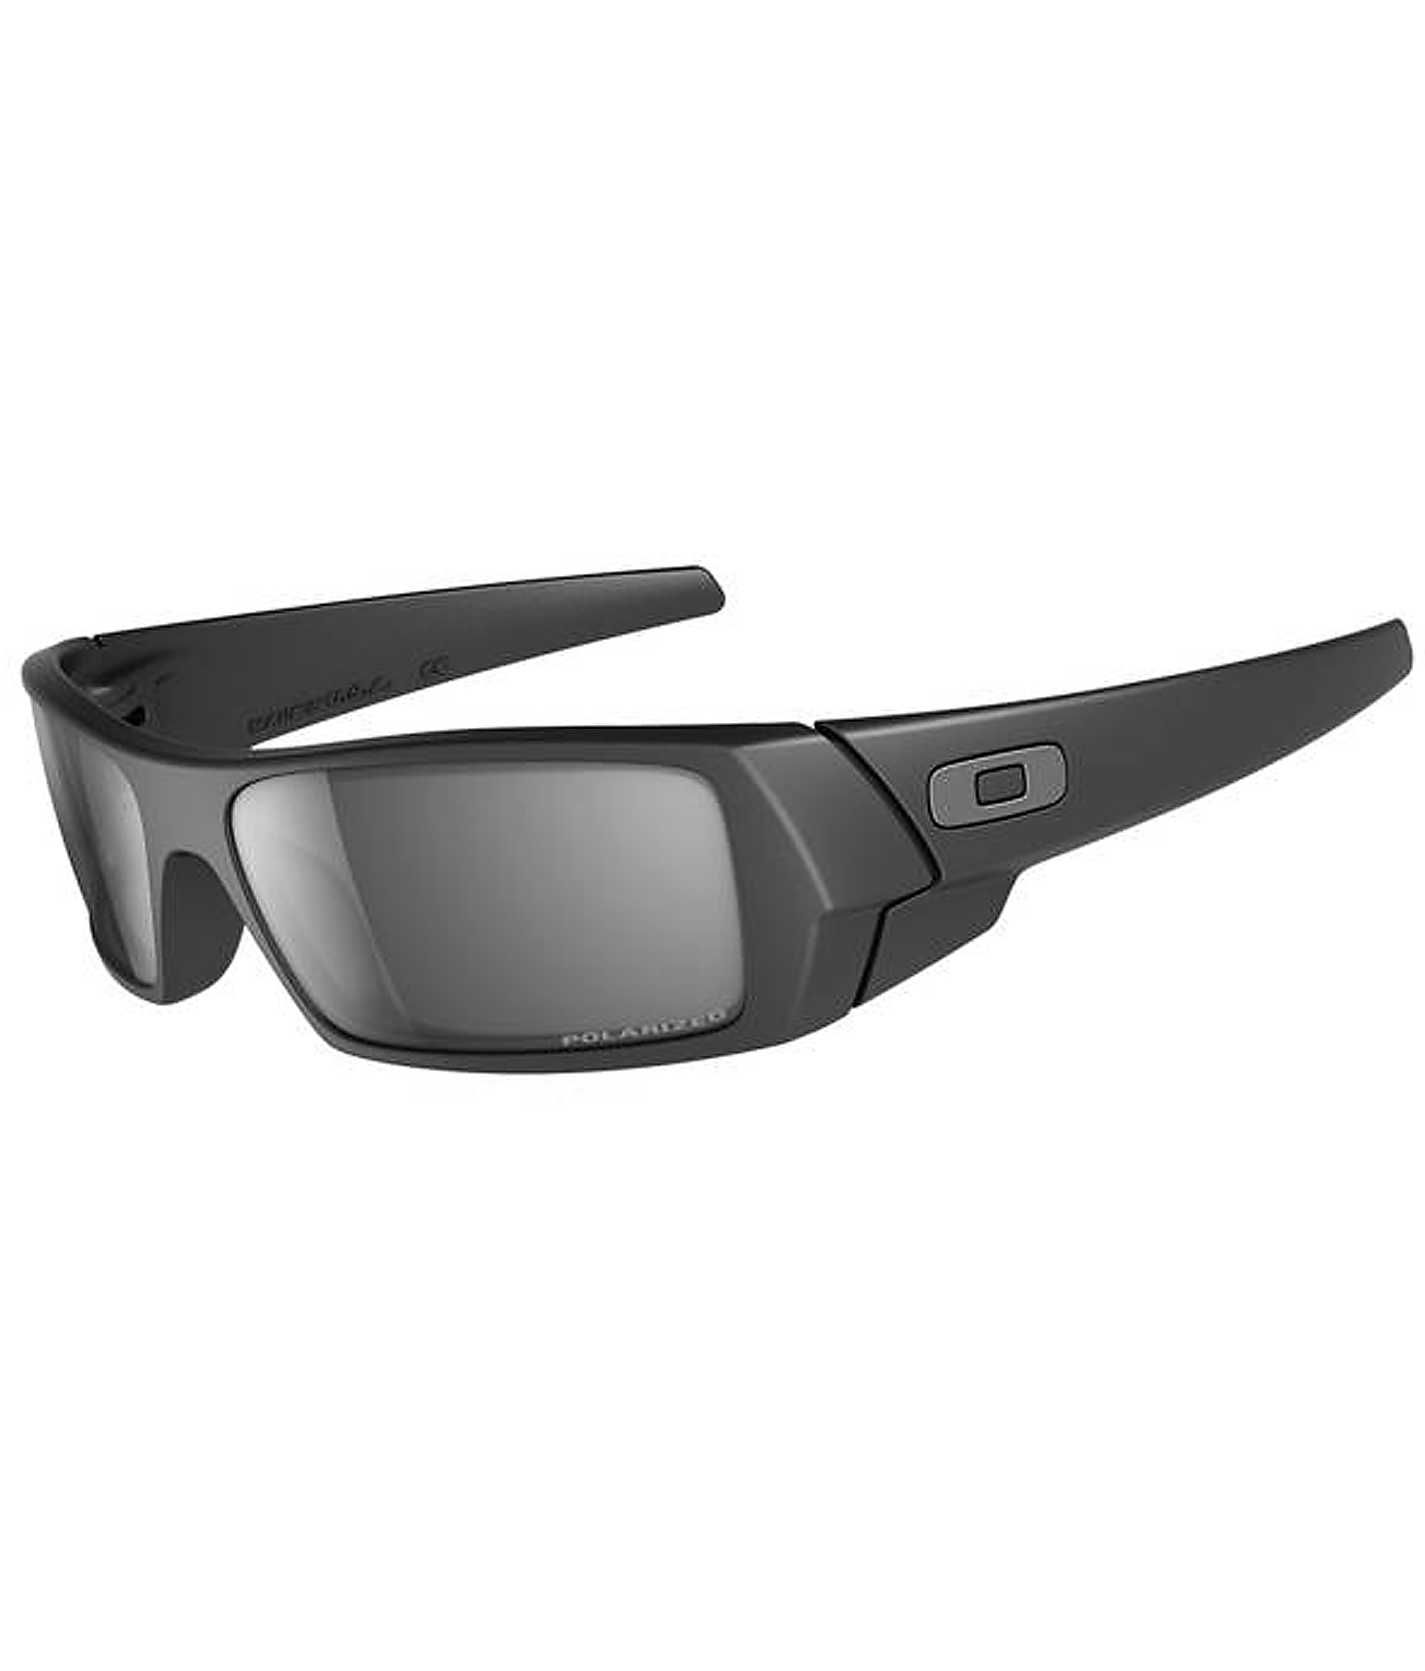 4249ccaa9364 Oakley Gascan Sunglasses - Men's Accessories | Buckle | Oakley ...